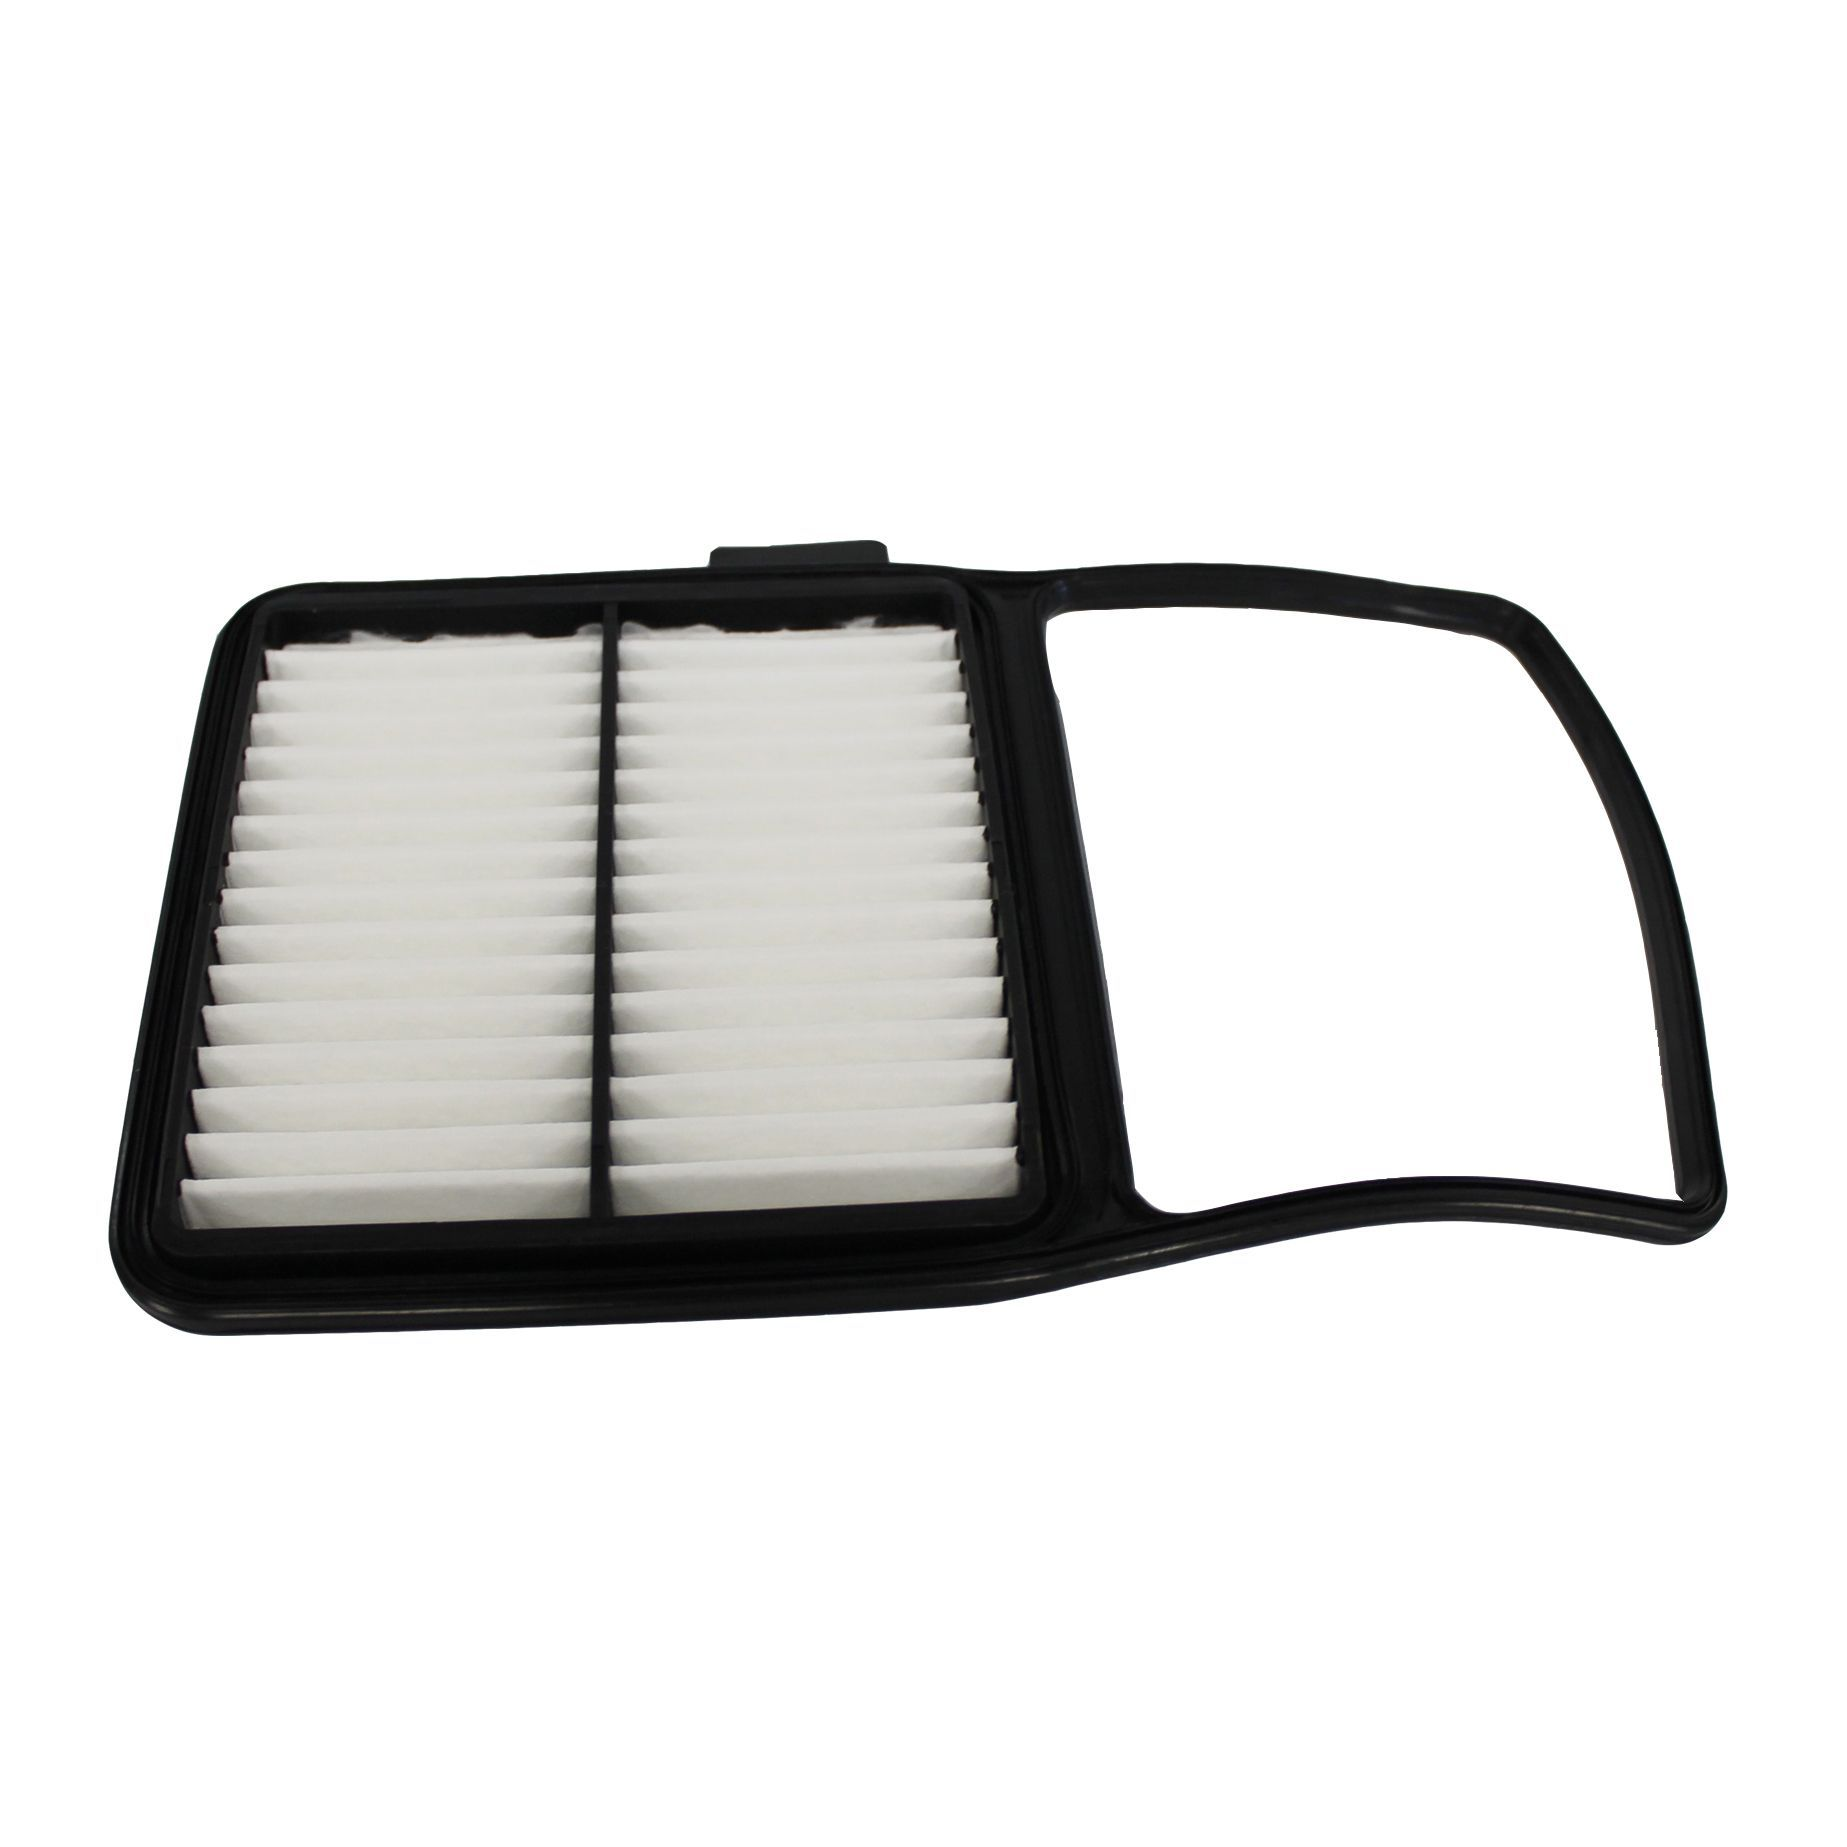 Crucial Rigid Panel Air Filter Fits Toyota pare to Part A